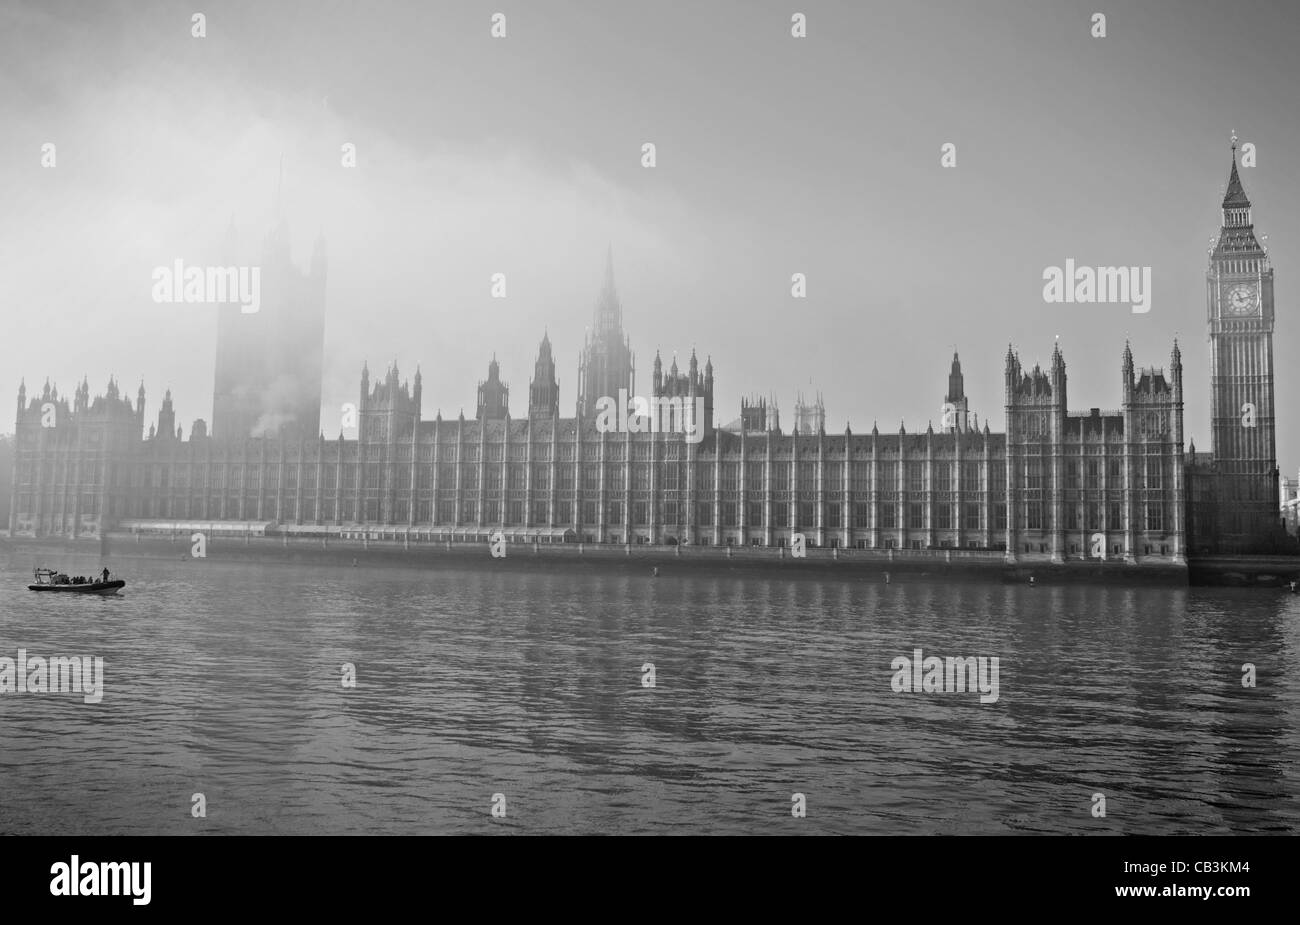 Black and white image of a foggy morning on the River Thames in London - Stock Image